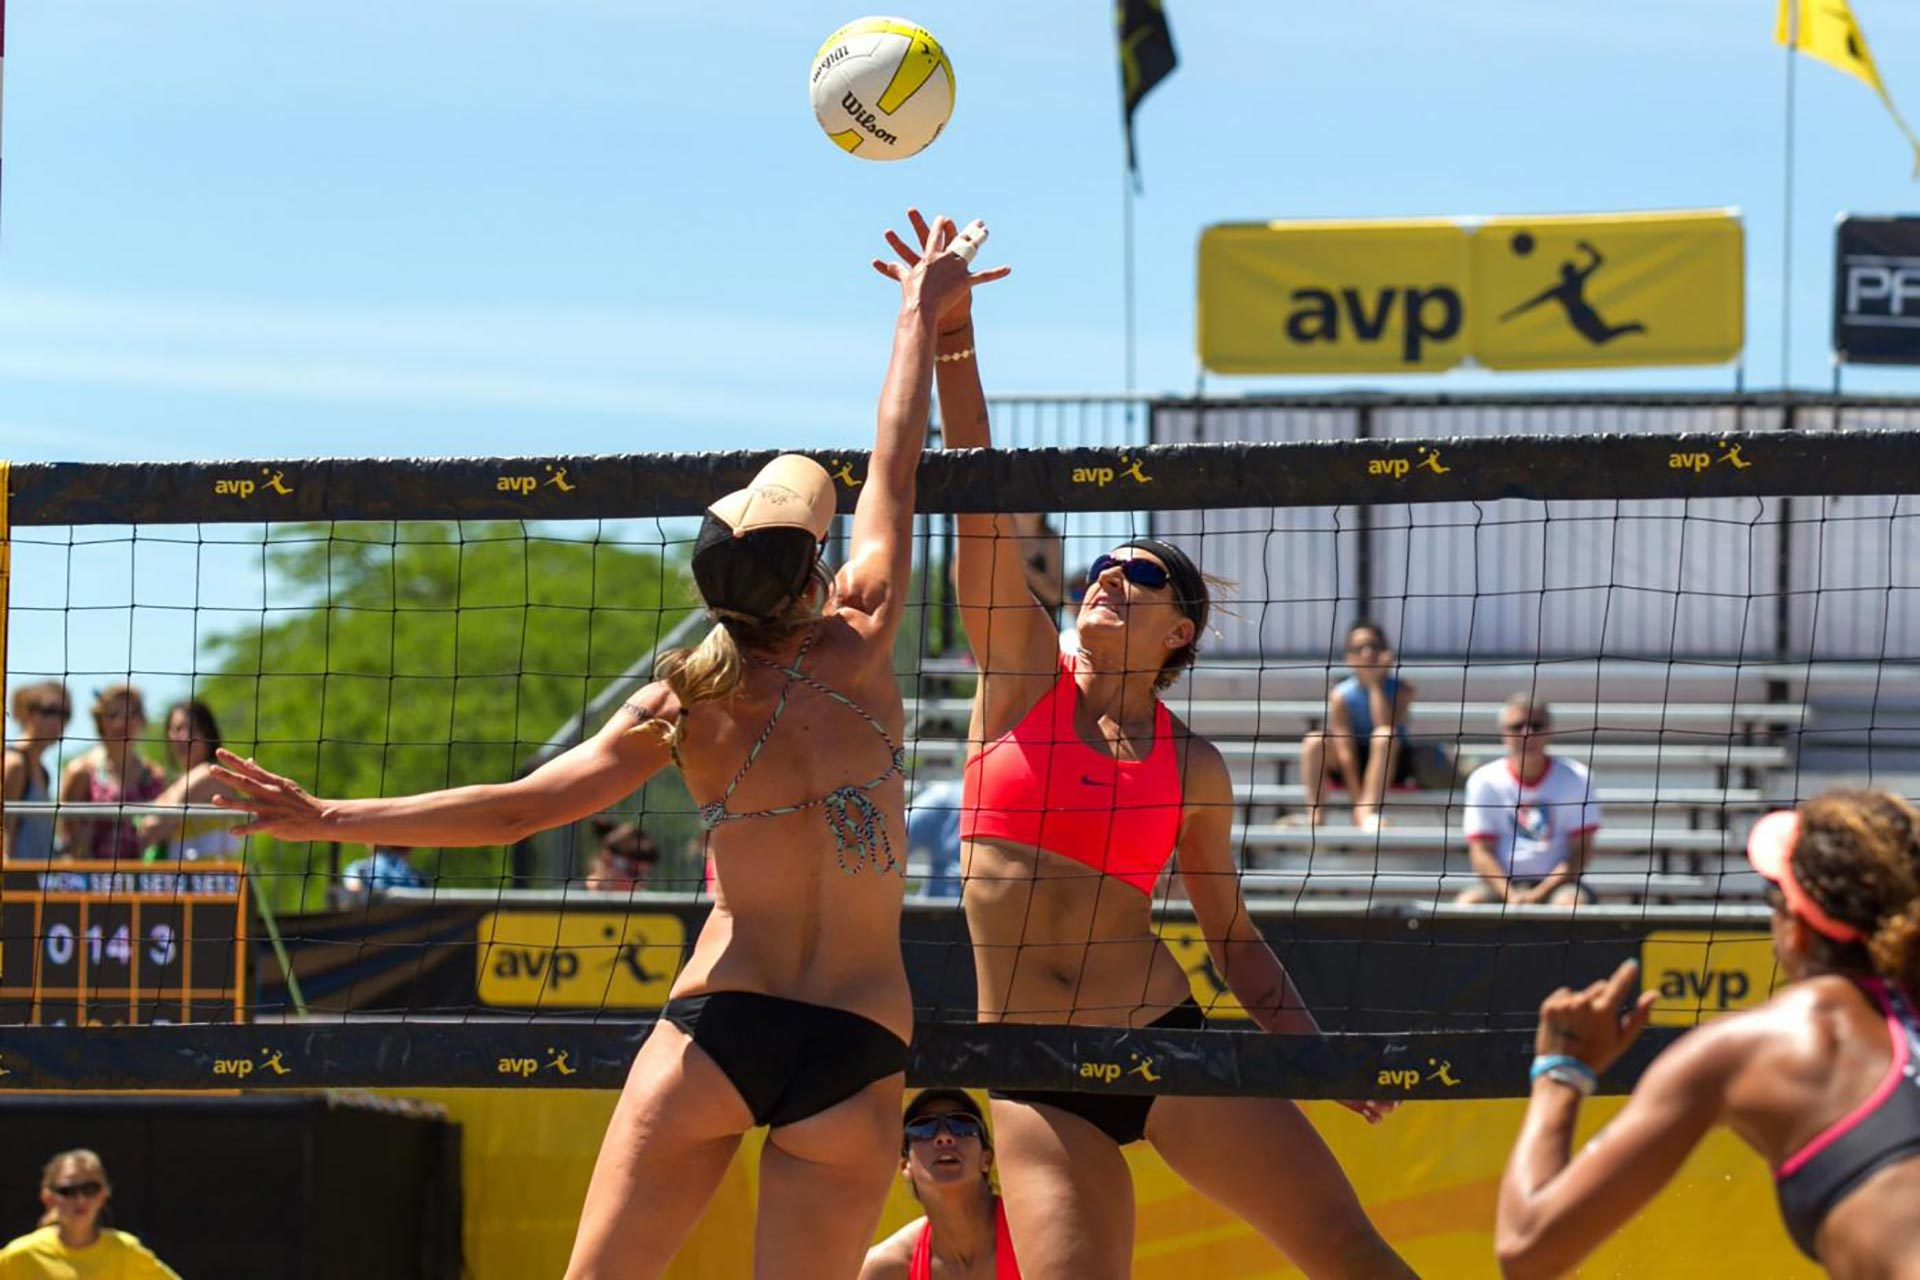 http://residencehotelmajestic.it/wp-content/uploads/2016/02/BeachVolley1920x1280.jpg